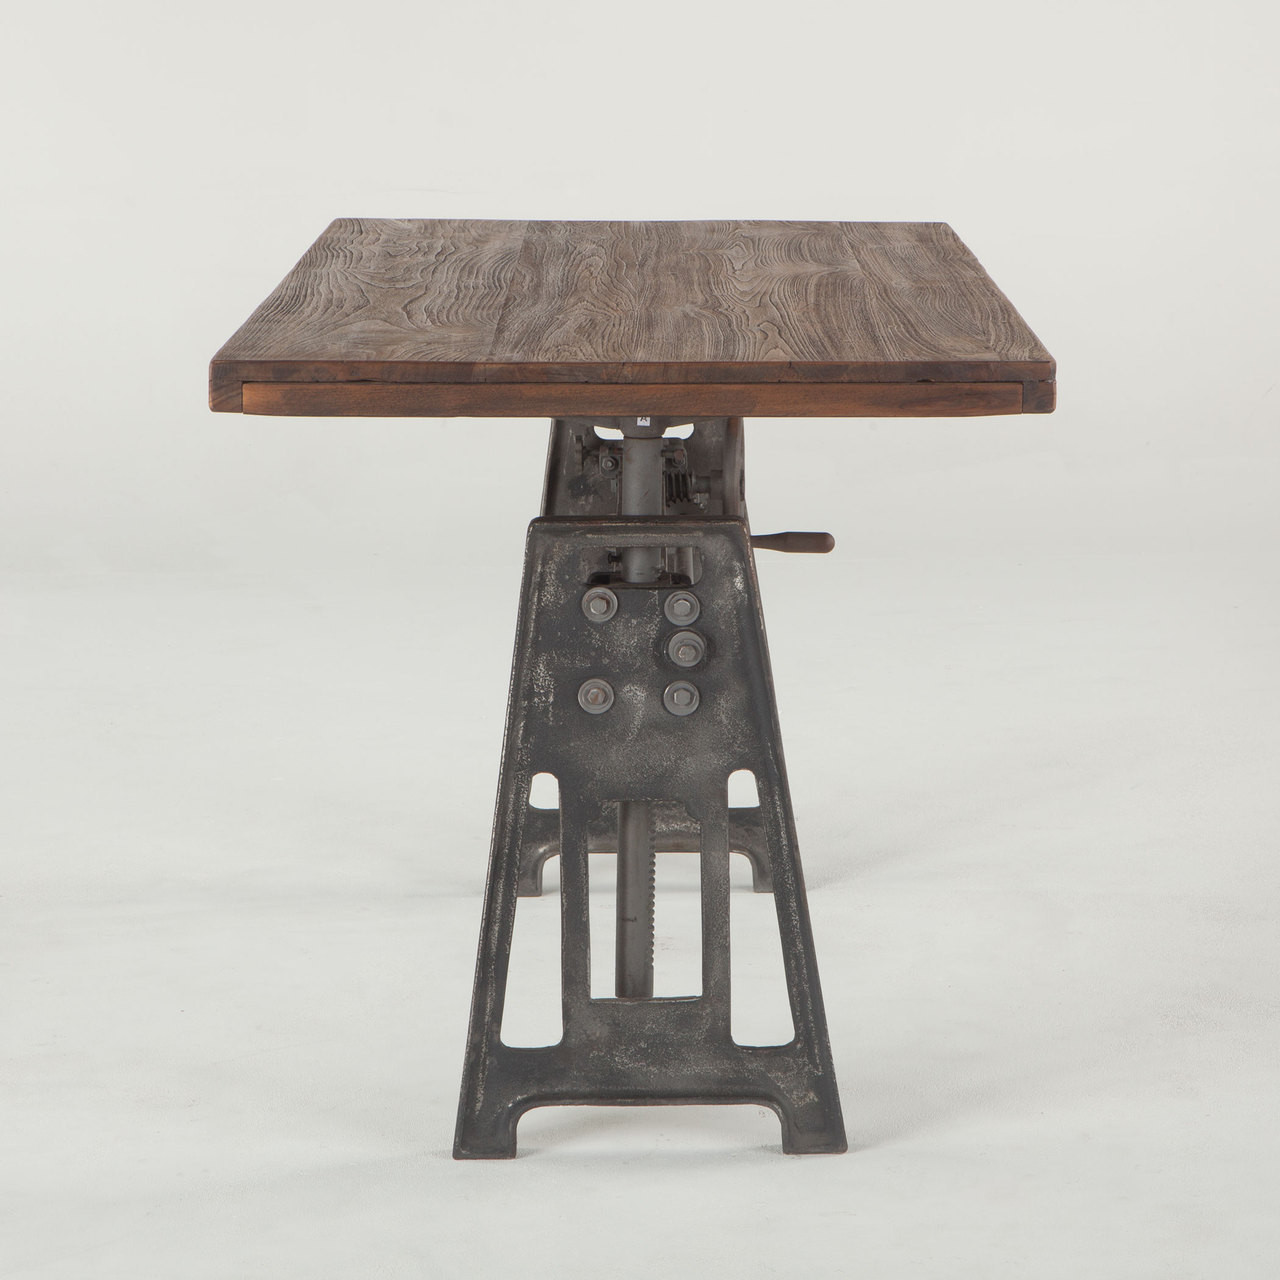 French Industrial Loft Metal and Wood Crank Adjustable Table Zin